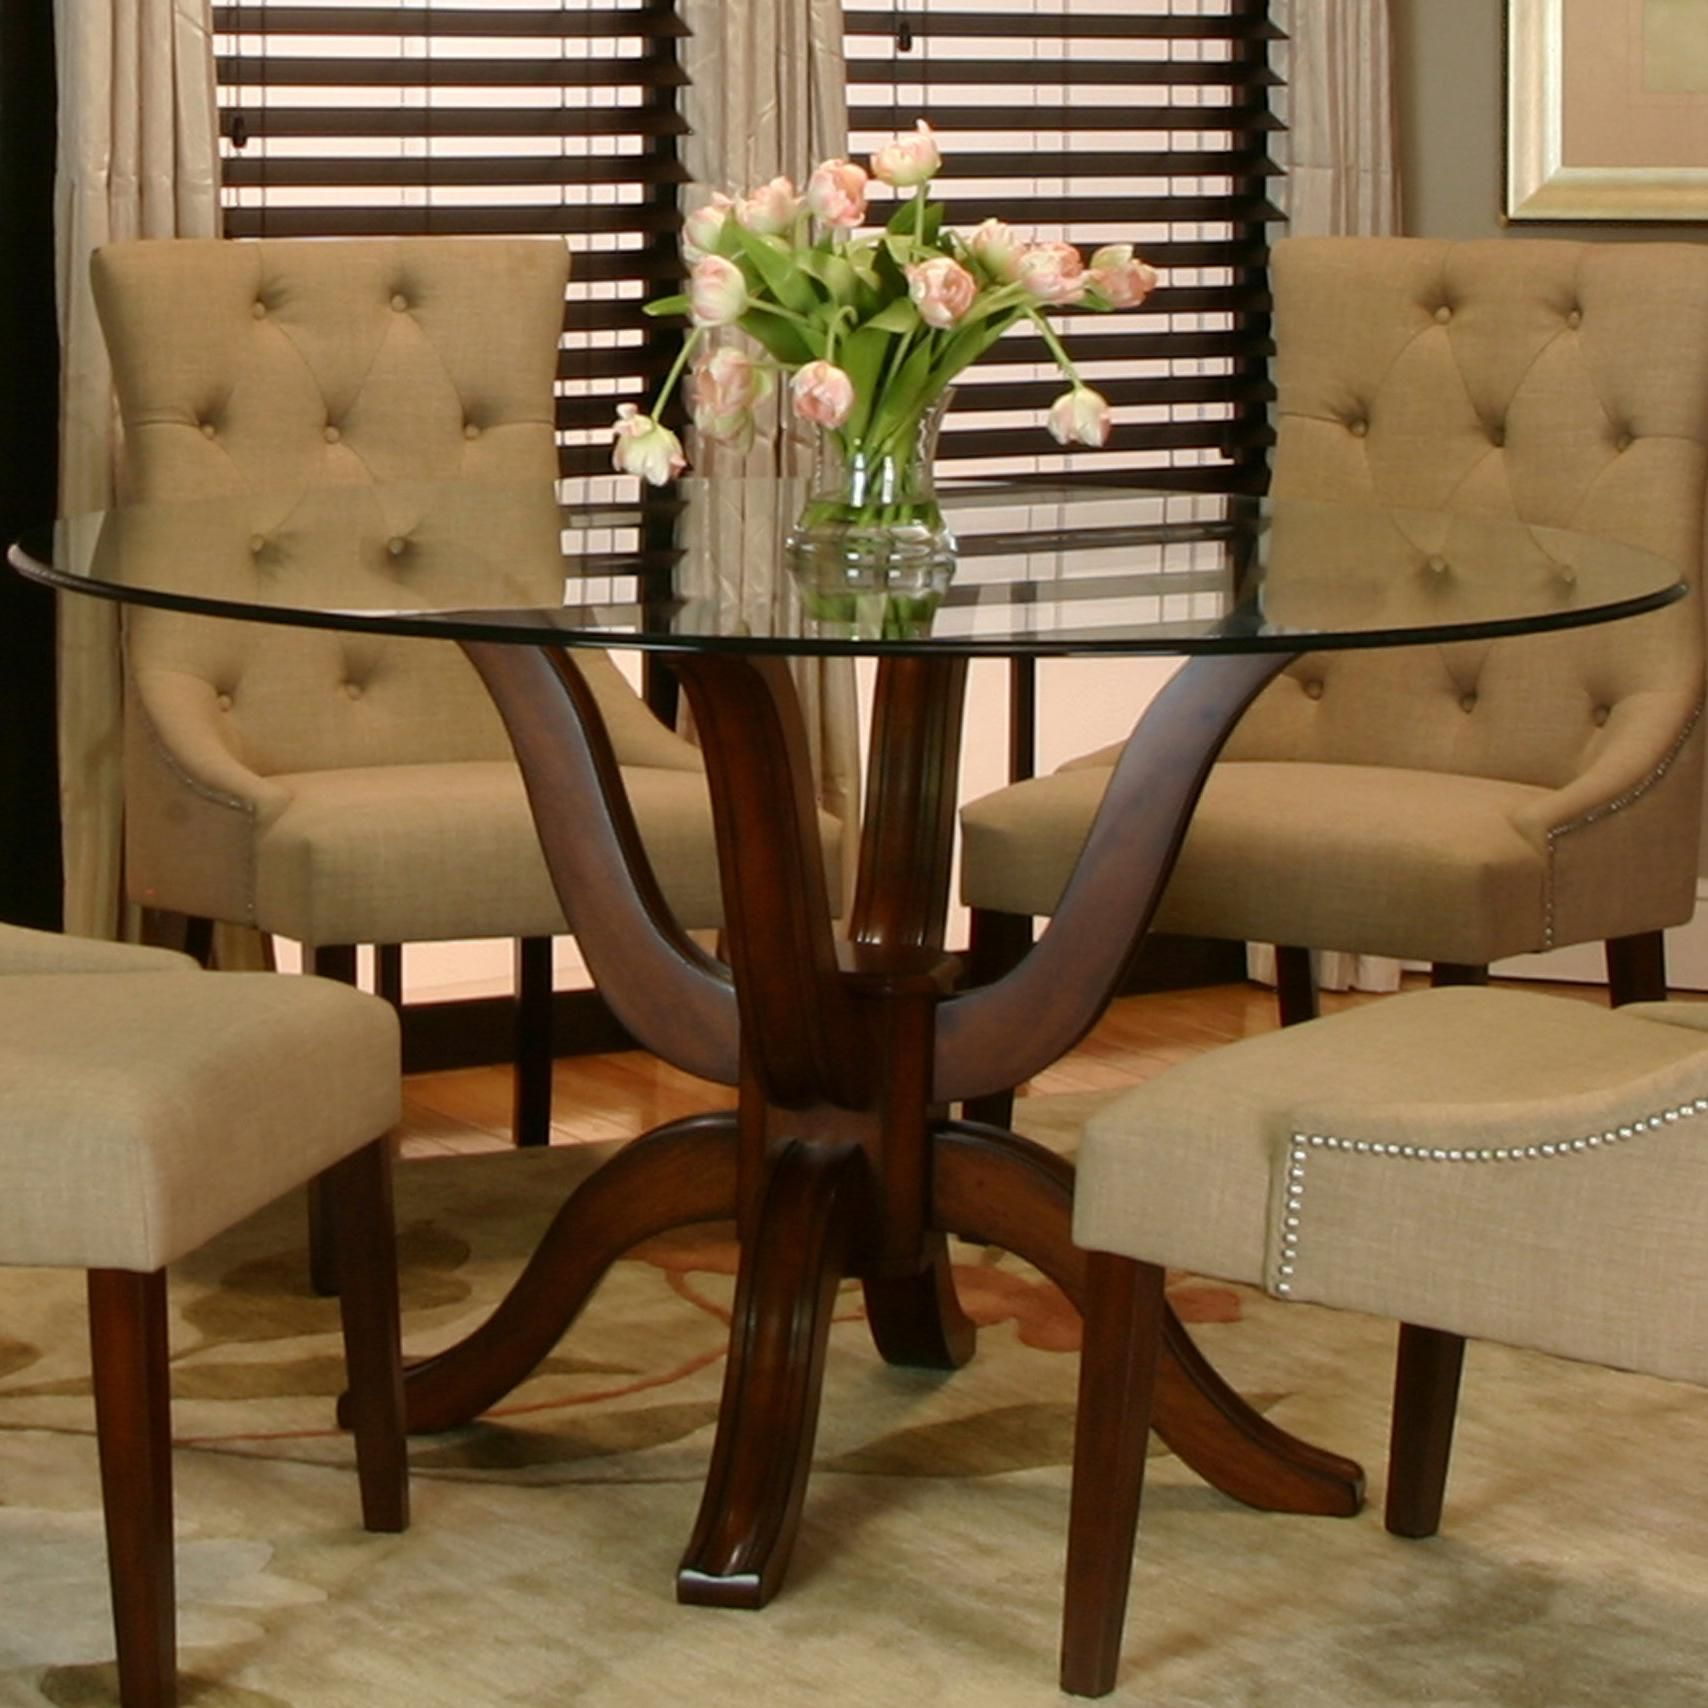 With A Classic Traditional Style, The Round Glass Table Top Of The Dark  Wood Pedestal ...